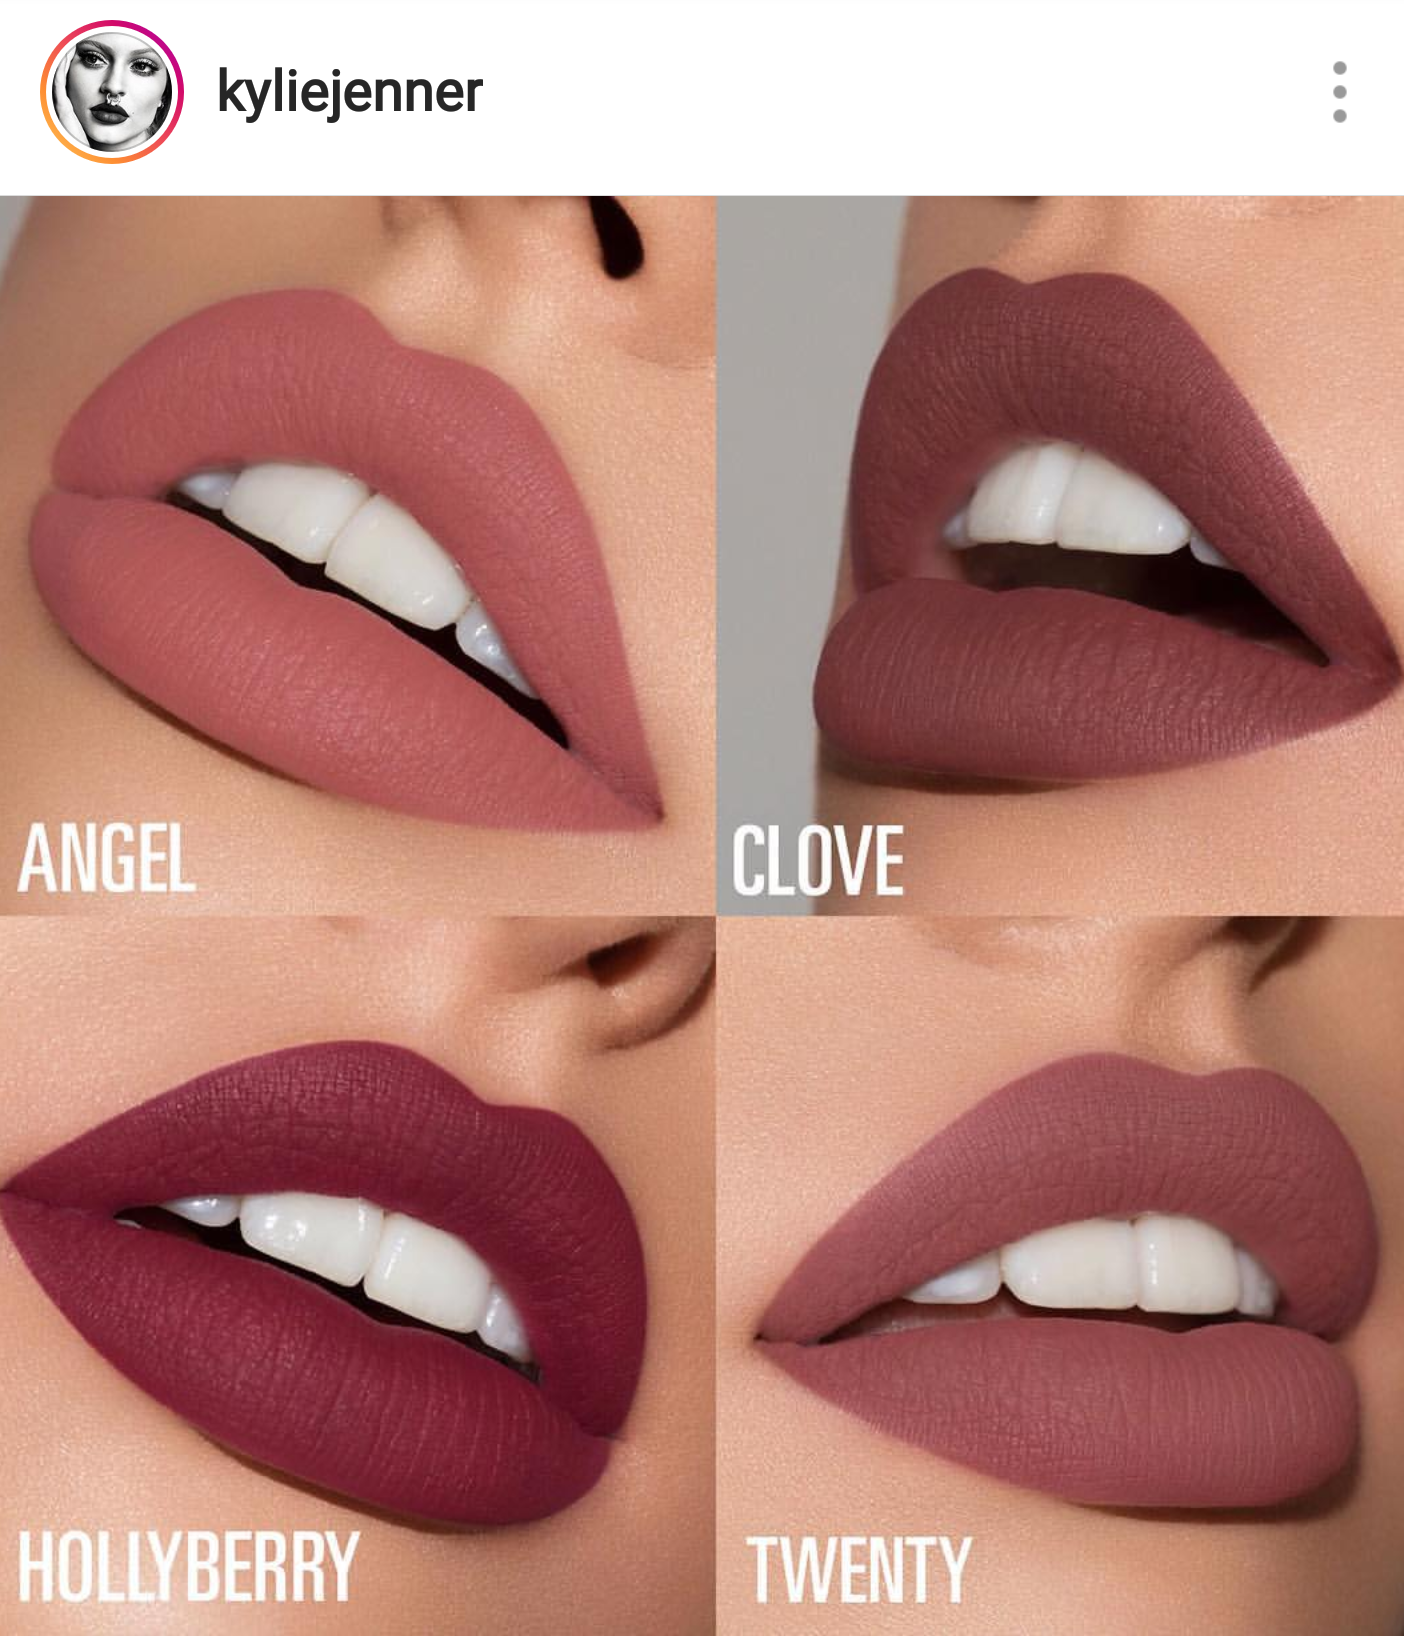 d018777bd0e However, we're sure that the 'master of branding' will be able to juggle  both looks, the more natural as well as the Kylie cosmetics full glam look.